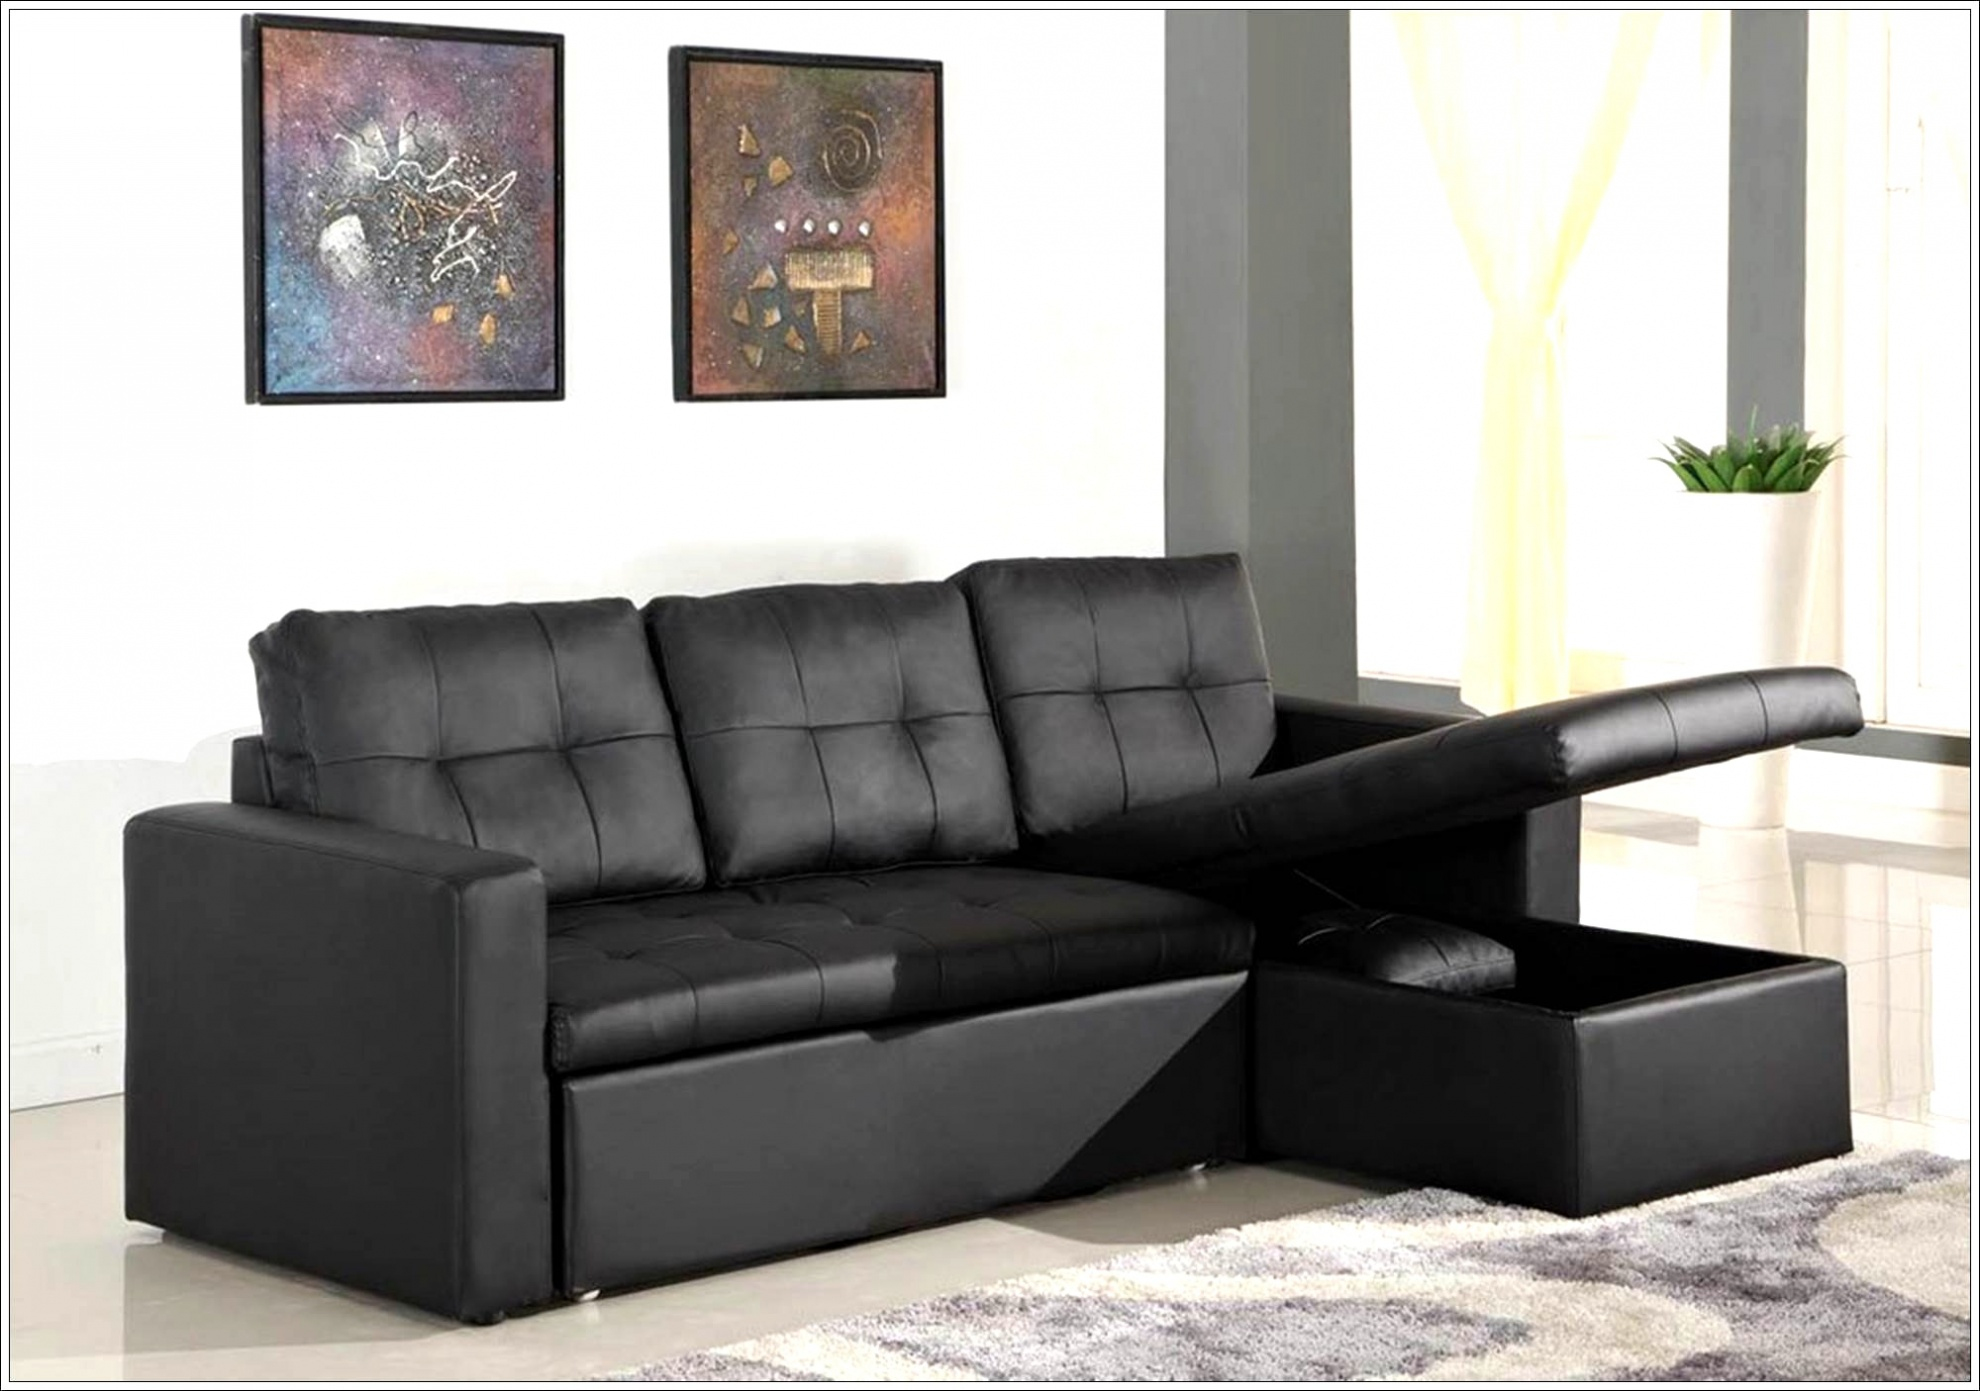 Canapé Relax Cuir Center Luxe Galerie Canapé 3 Places Relax Centralillaw